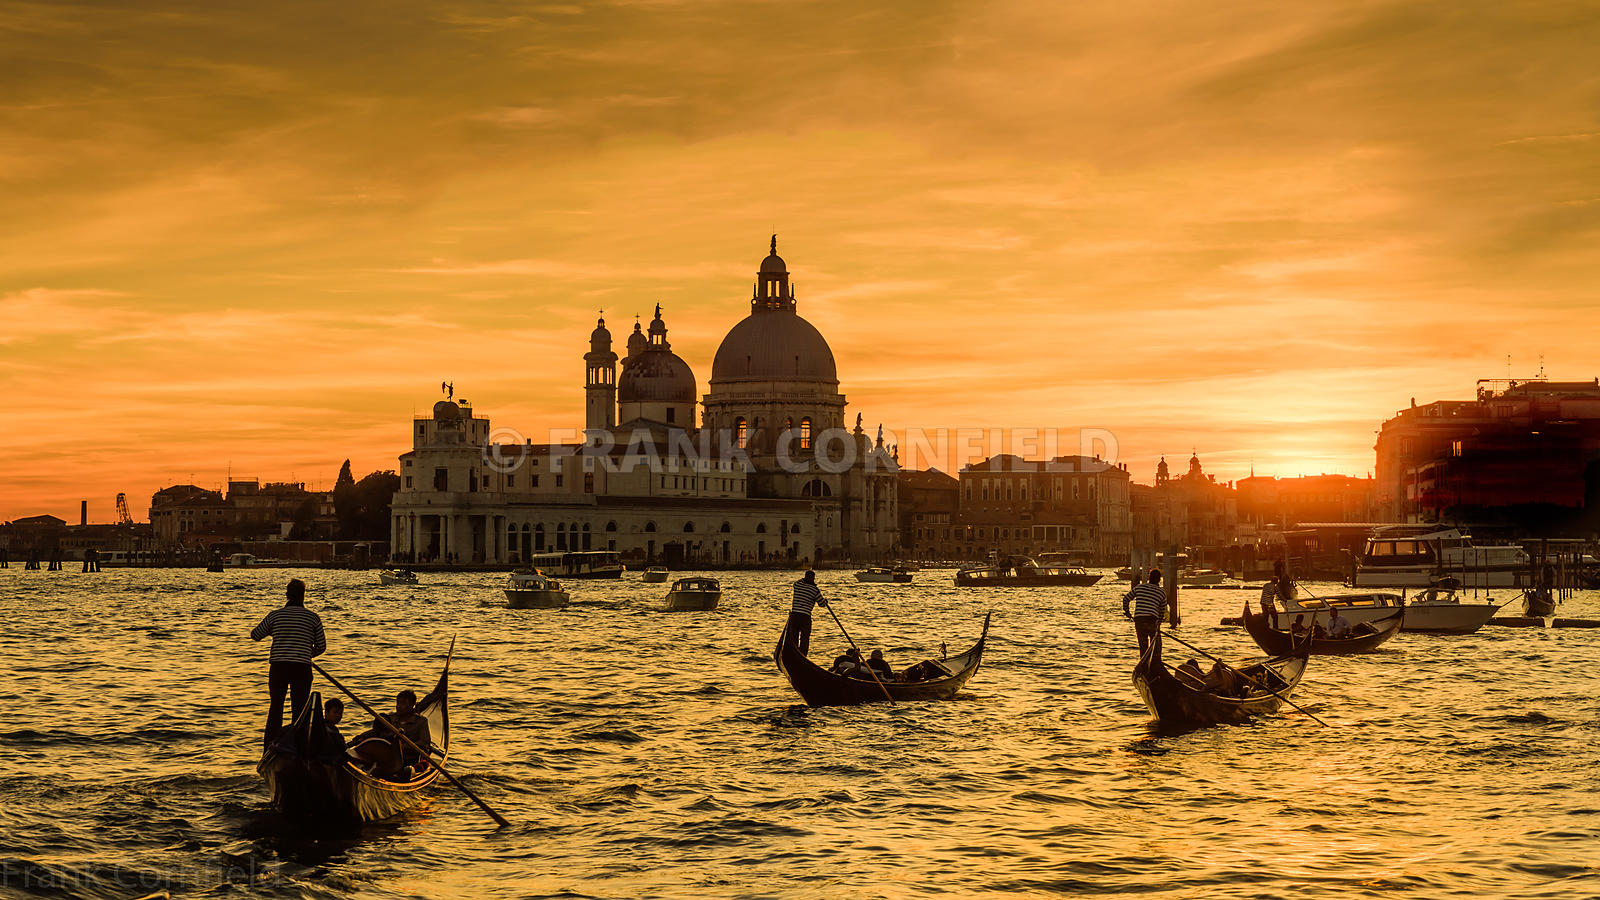 A classic Venice scene with gondolas on the Grand Canal near the Basilica Santa Maria della Salute, Venice.